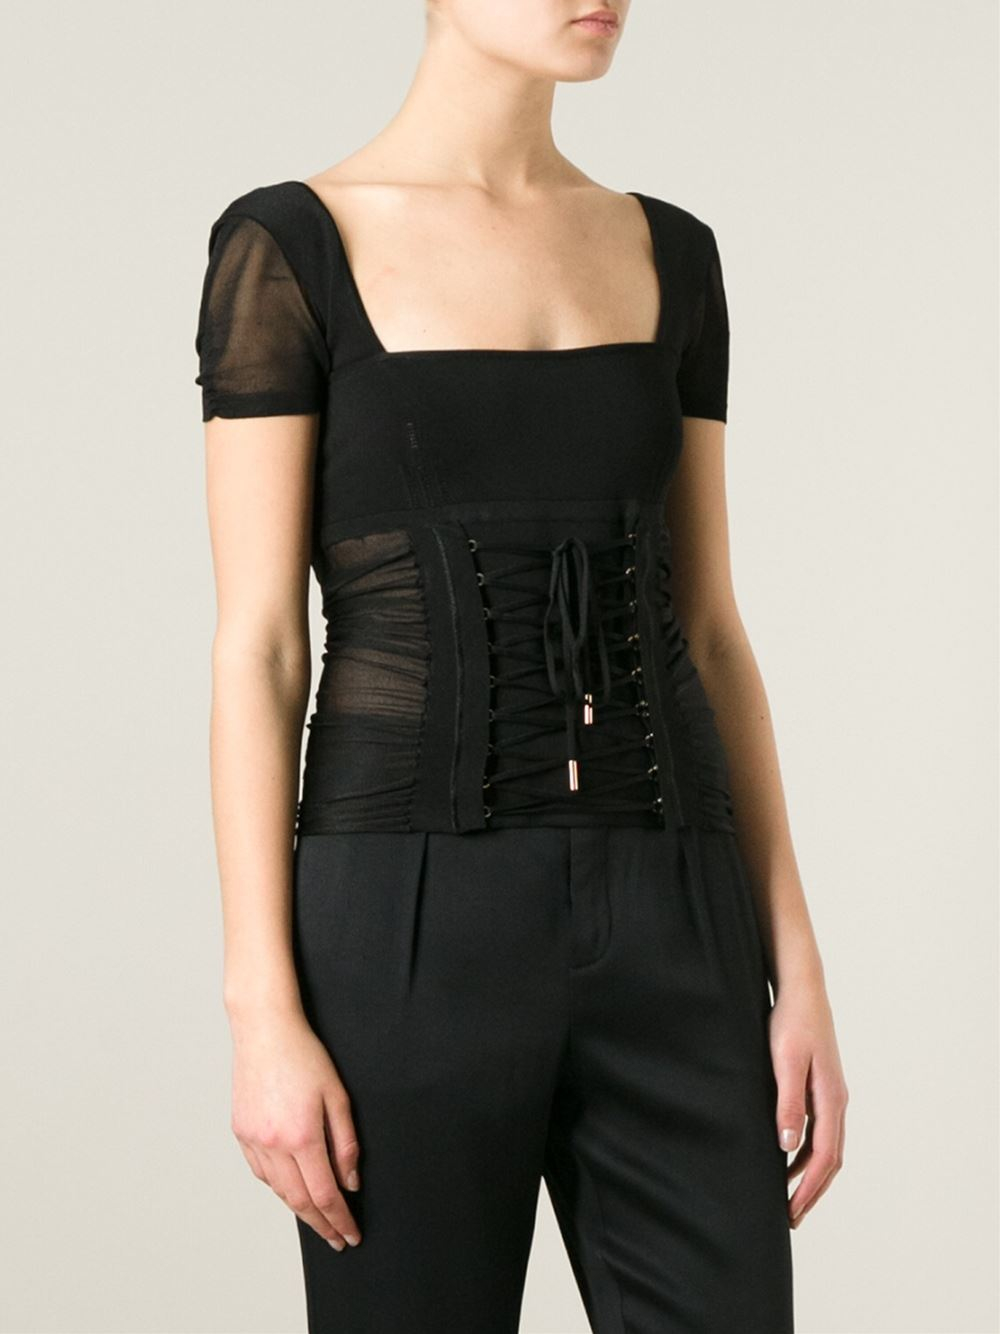 Dolce & gabbana Corset Top in Black